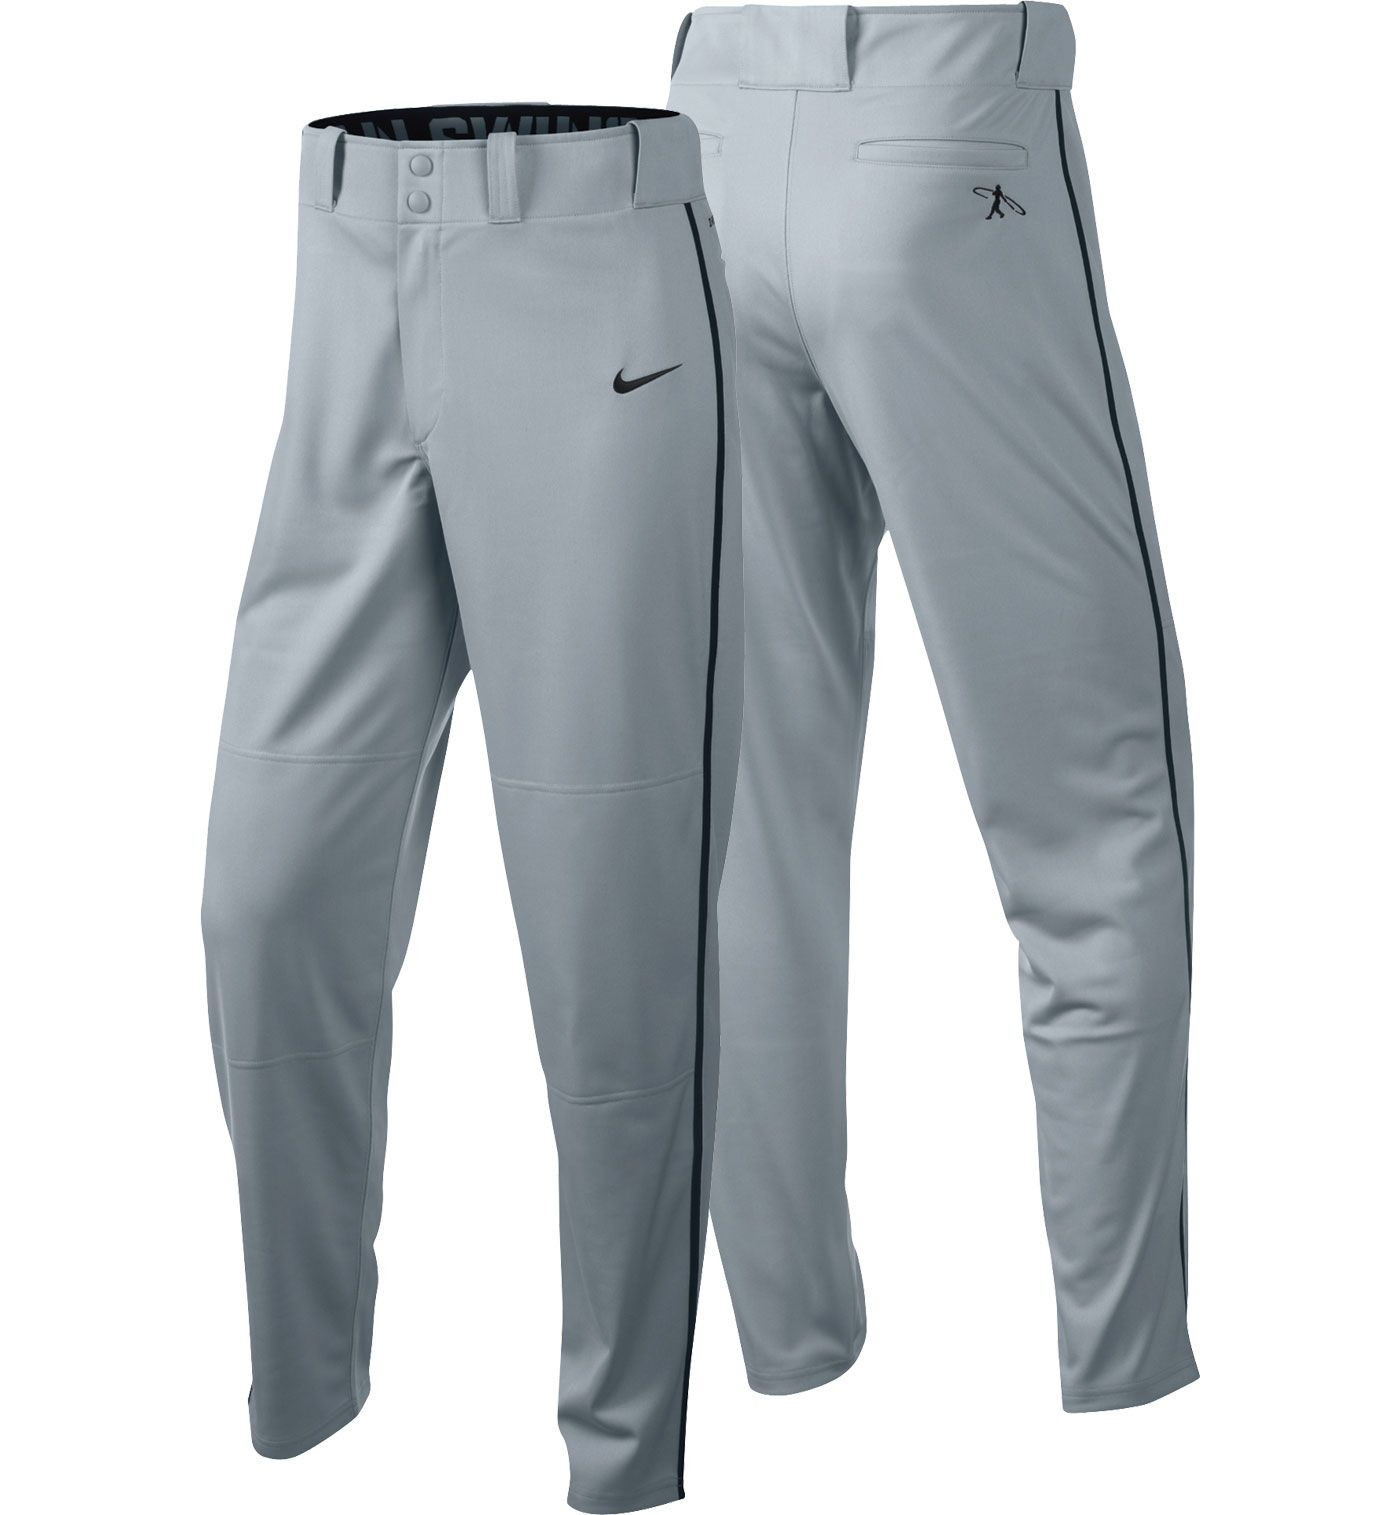 Nike Boys' Swingman Dri-FIT Piped Baseball Pants